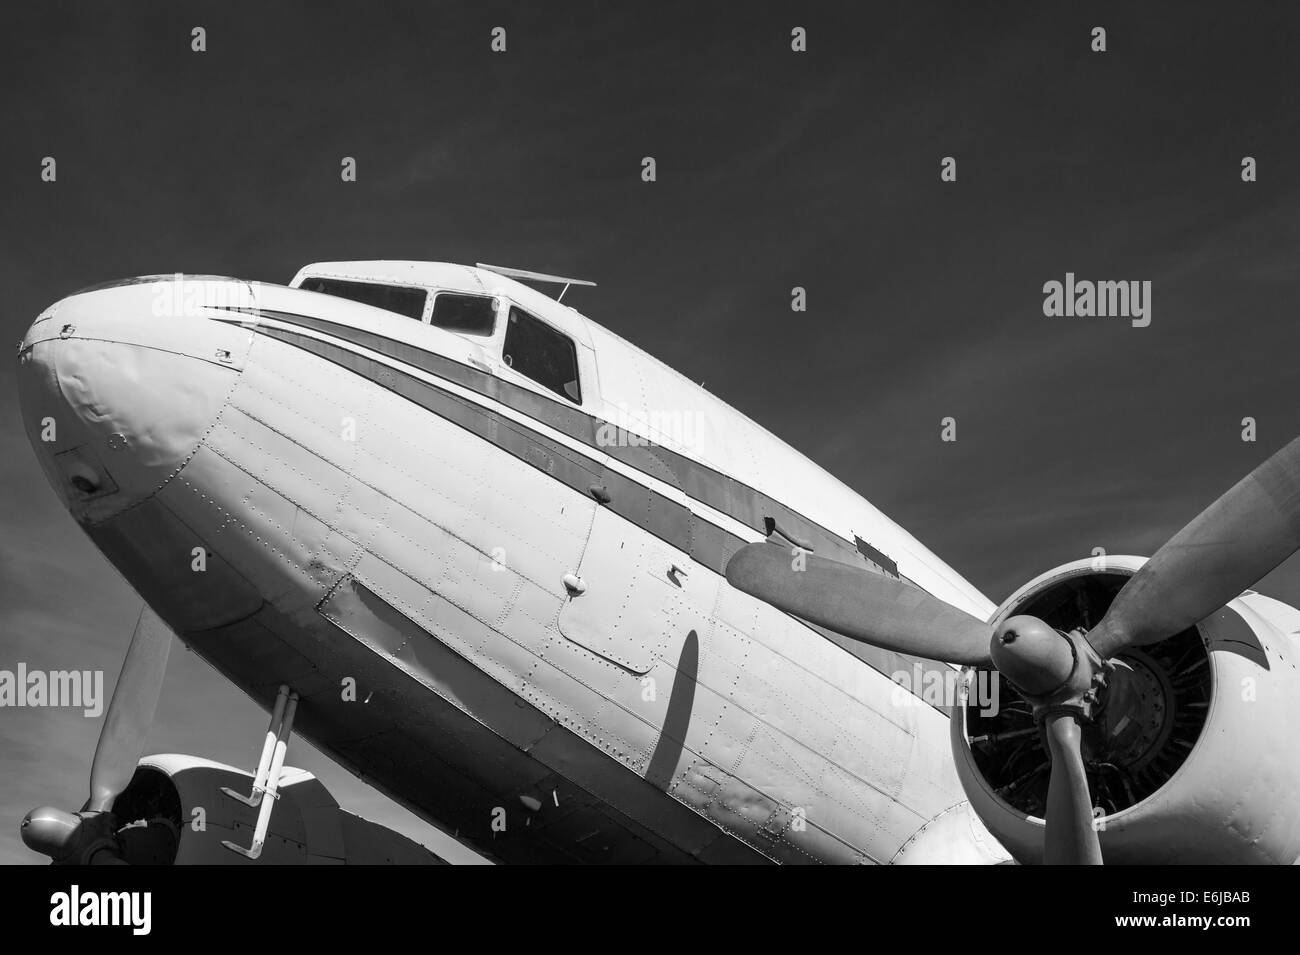 Classic old airliner in black and white - Stock Image